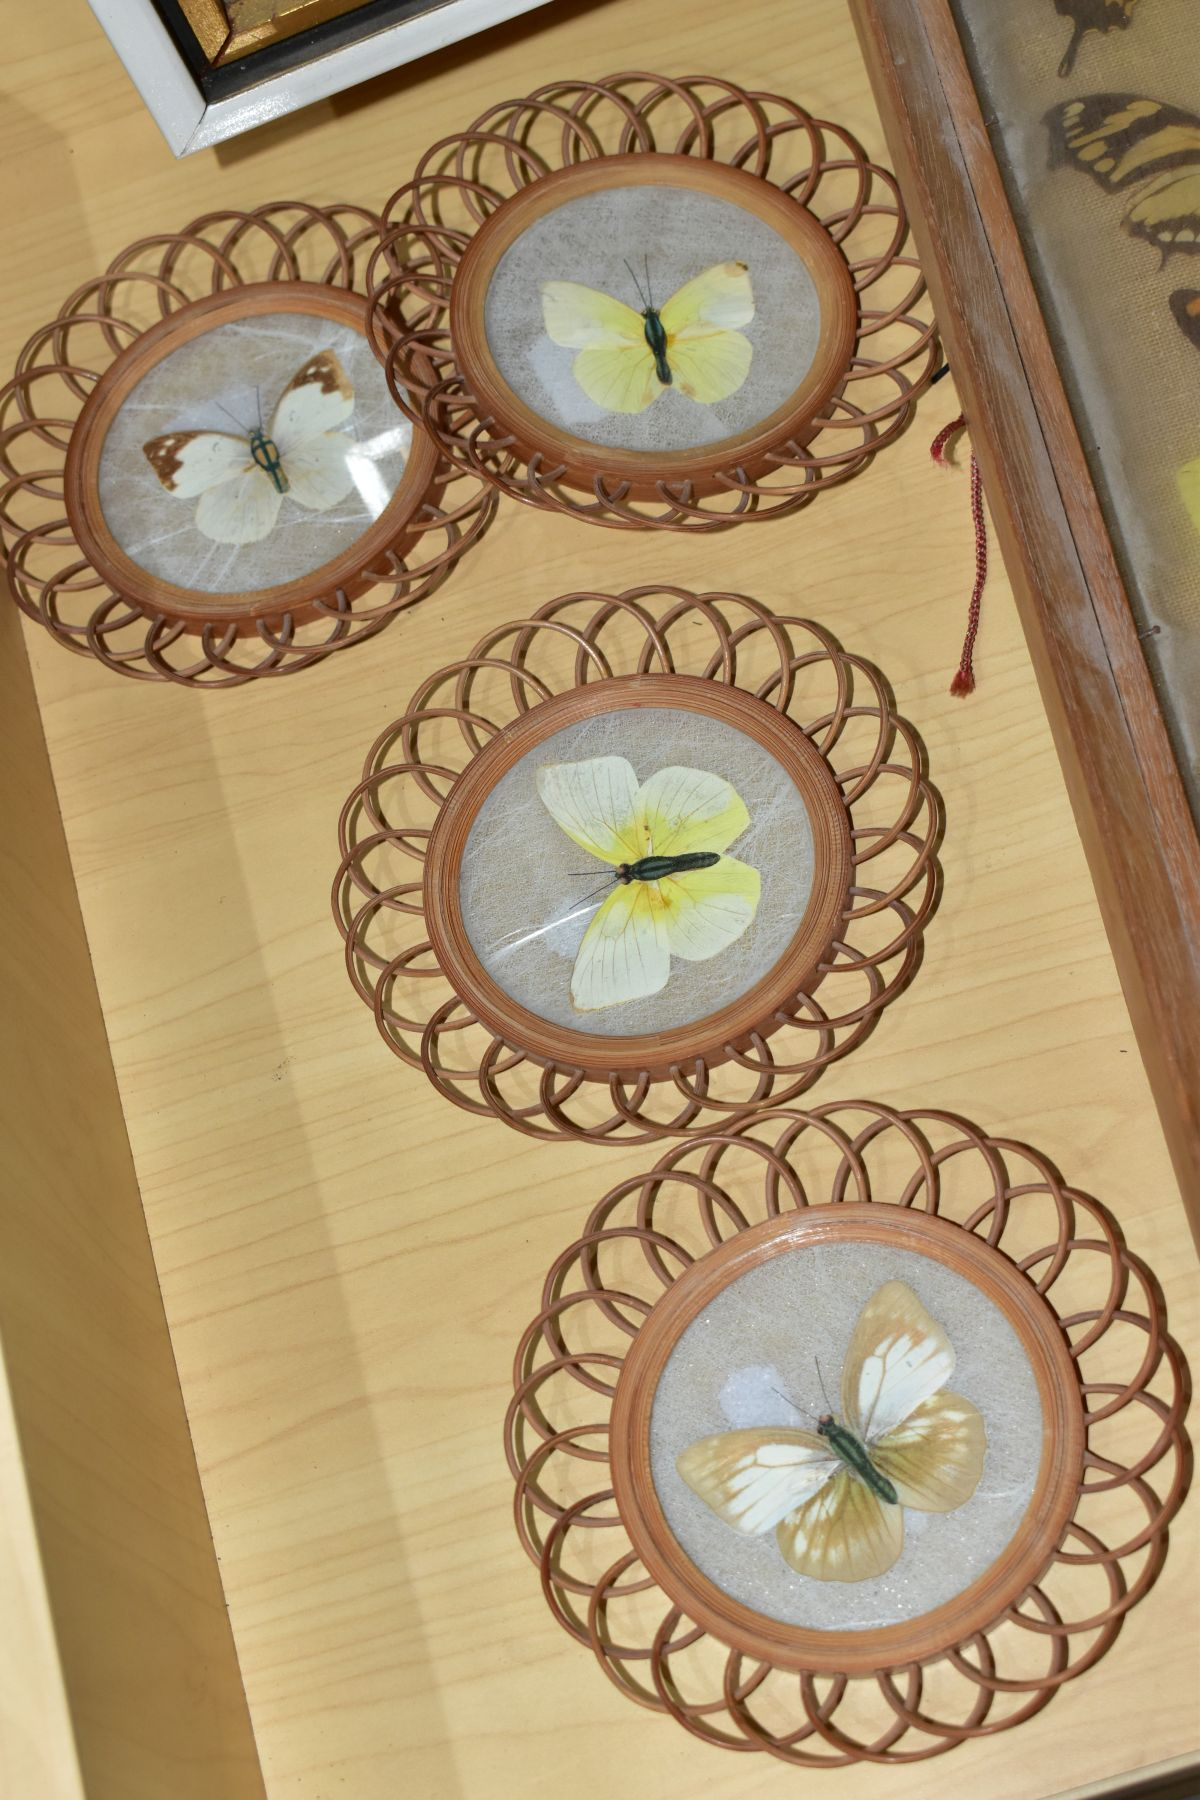 THREE DISPLAY CASES CONTAINING BUTTERFLIES AND MOTH SPECIMENS, together with four circular framed - Image 3 of 10